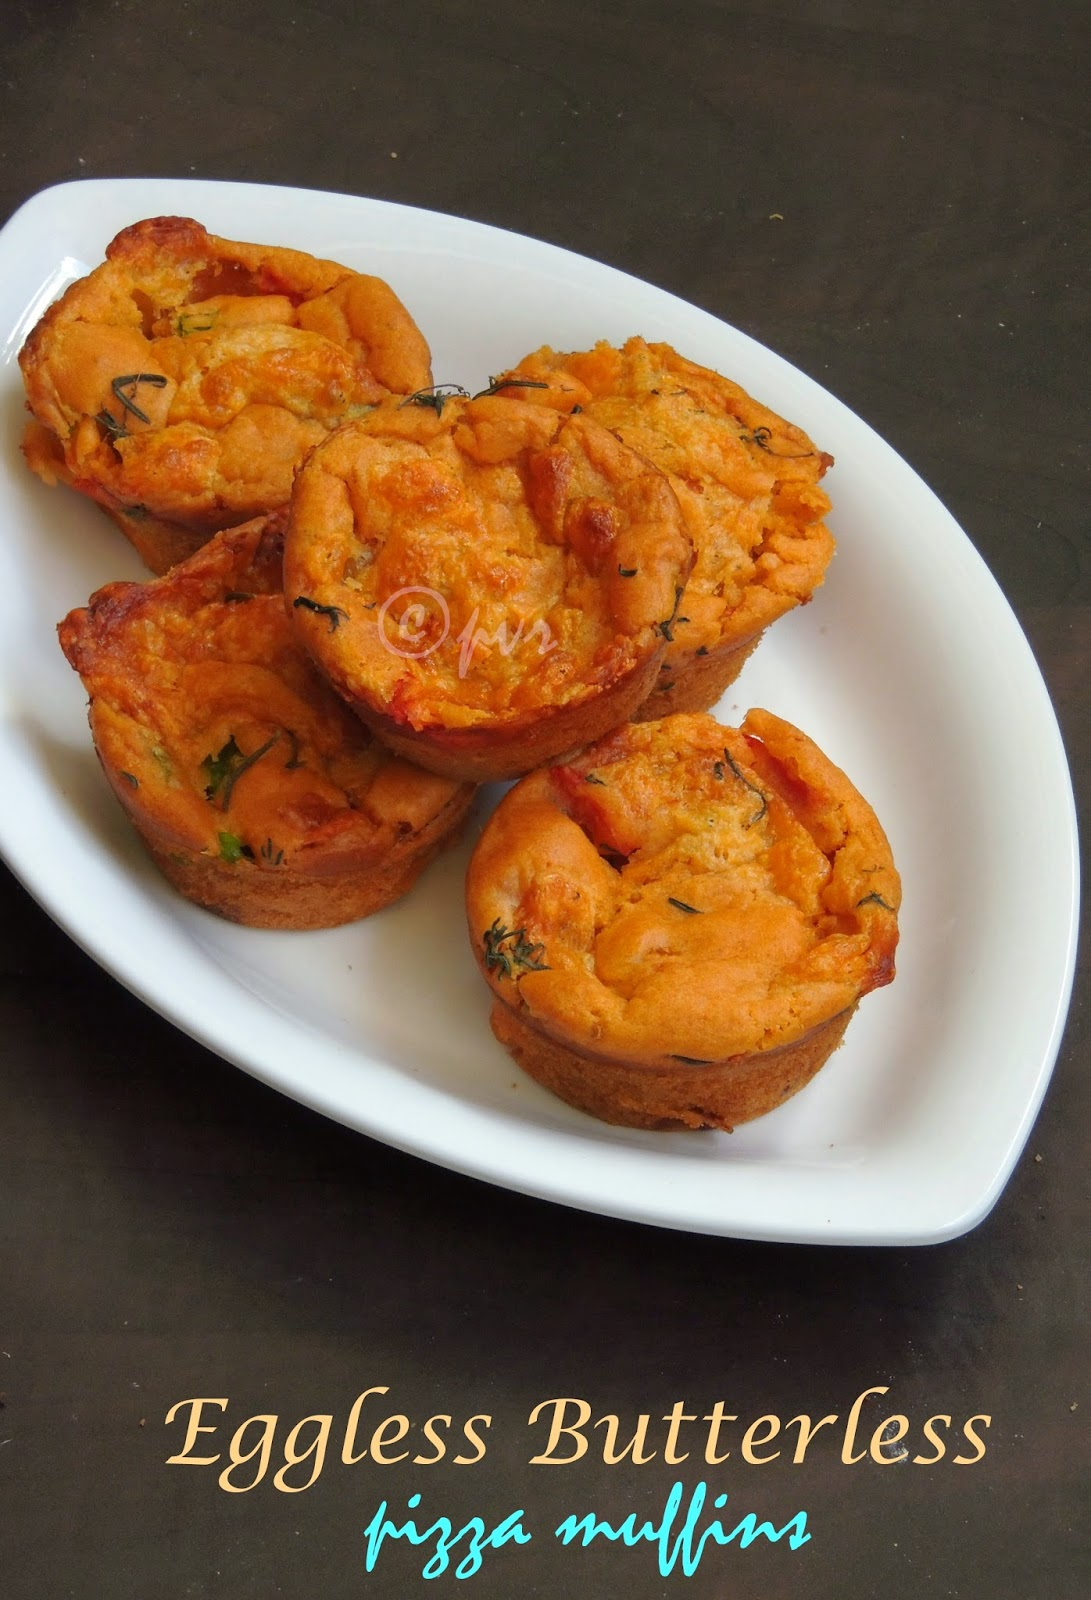 Eggless Butterless Pizza Muffins, eggless spicy pizza muffins, vegetable pizza muffins